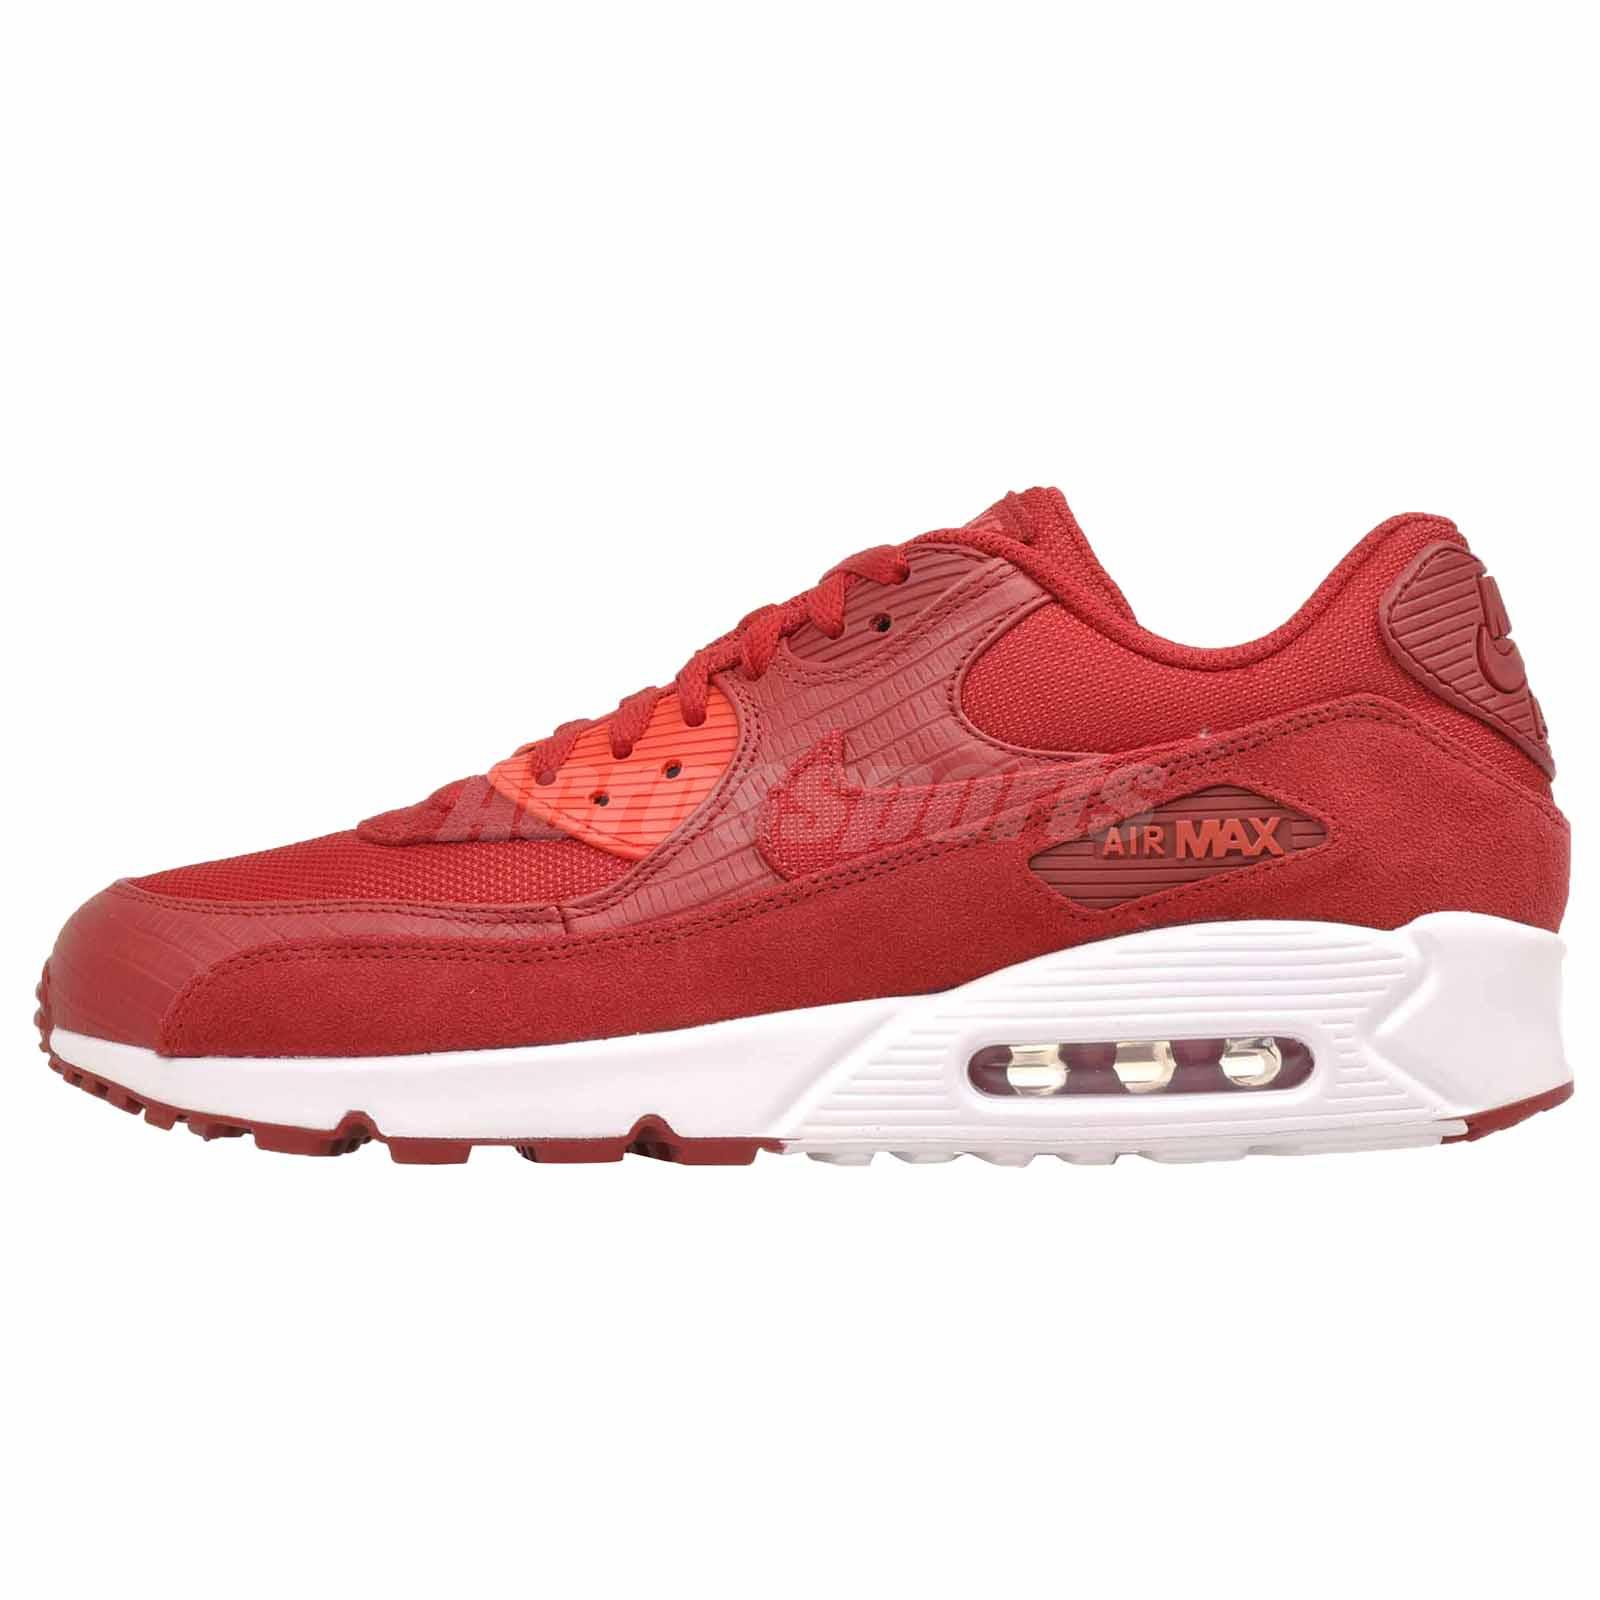 hot sale online 981e1 ce982 Nike Air Max 90 Premium Running Mens Shoes Gym Red 700155-602